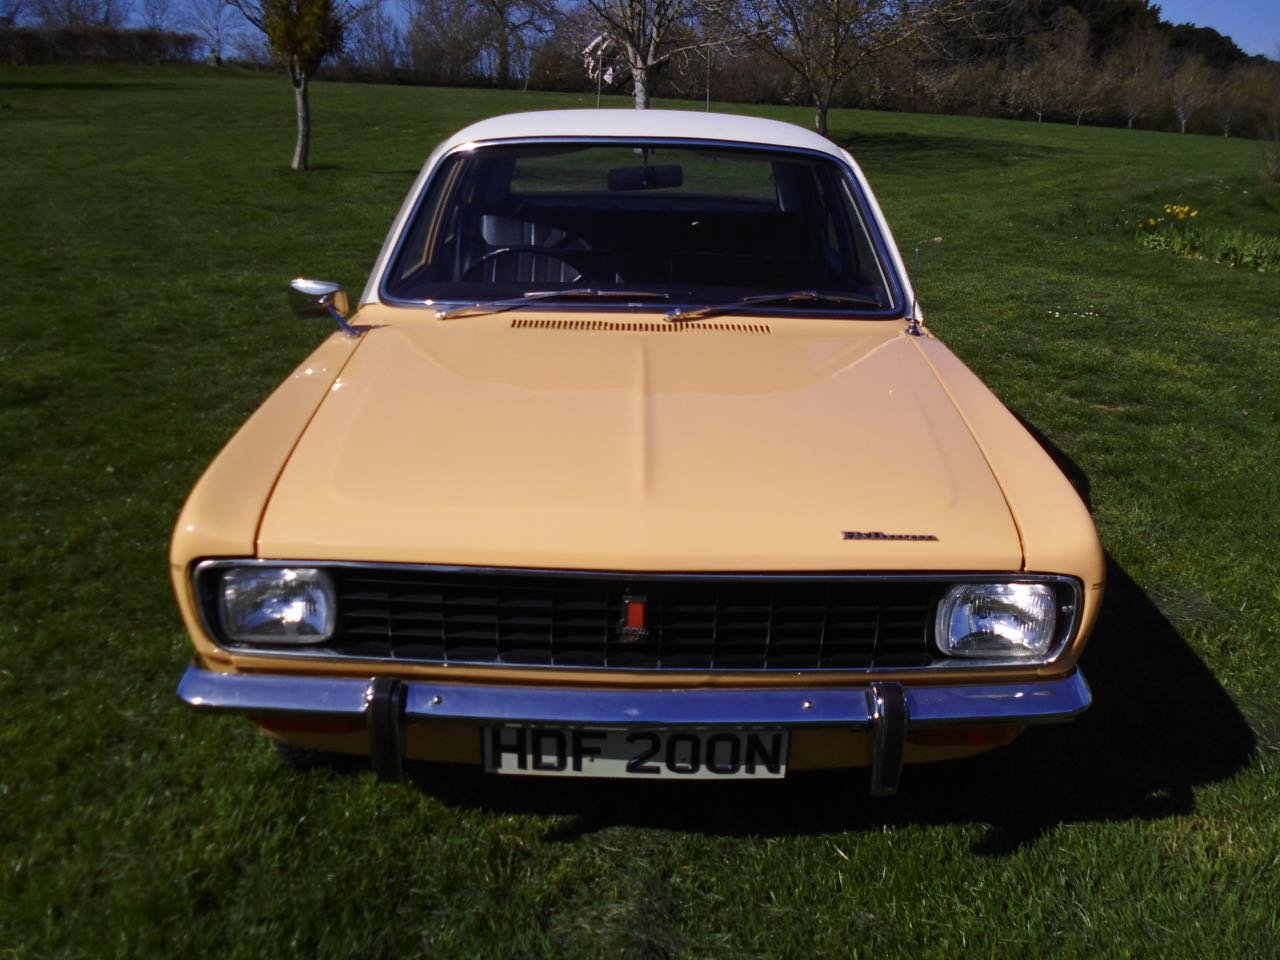 1976 Hillman Avenger 1600 Automatic Sunseeker Model SOLD (picture 6 of 6)